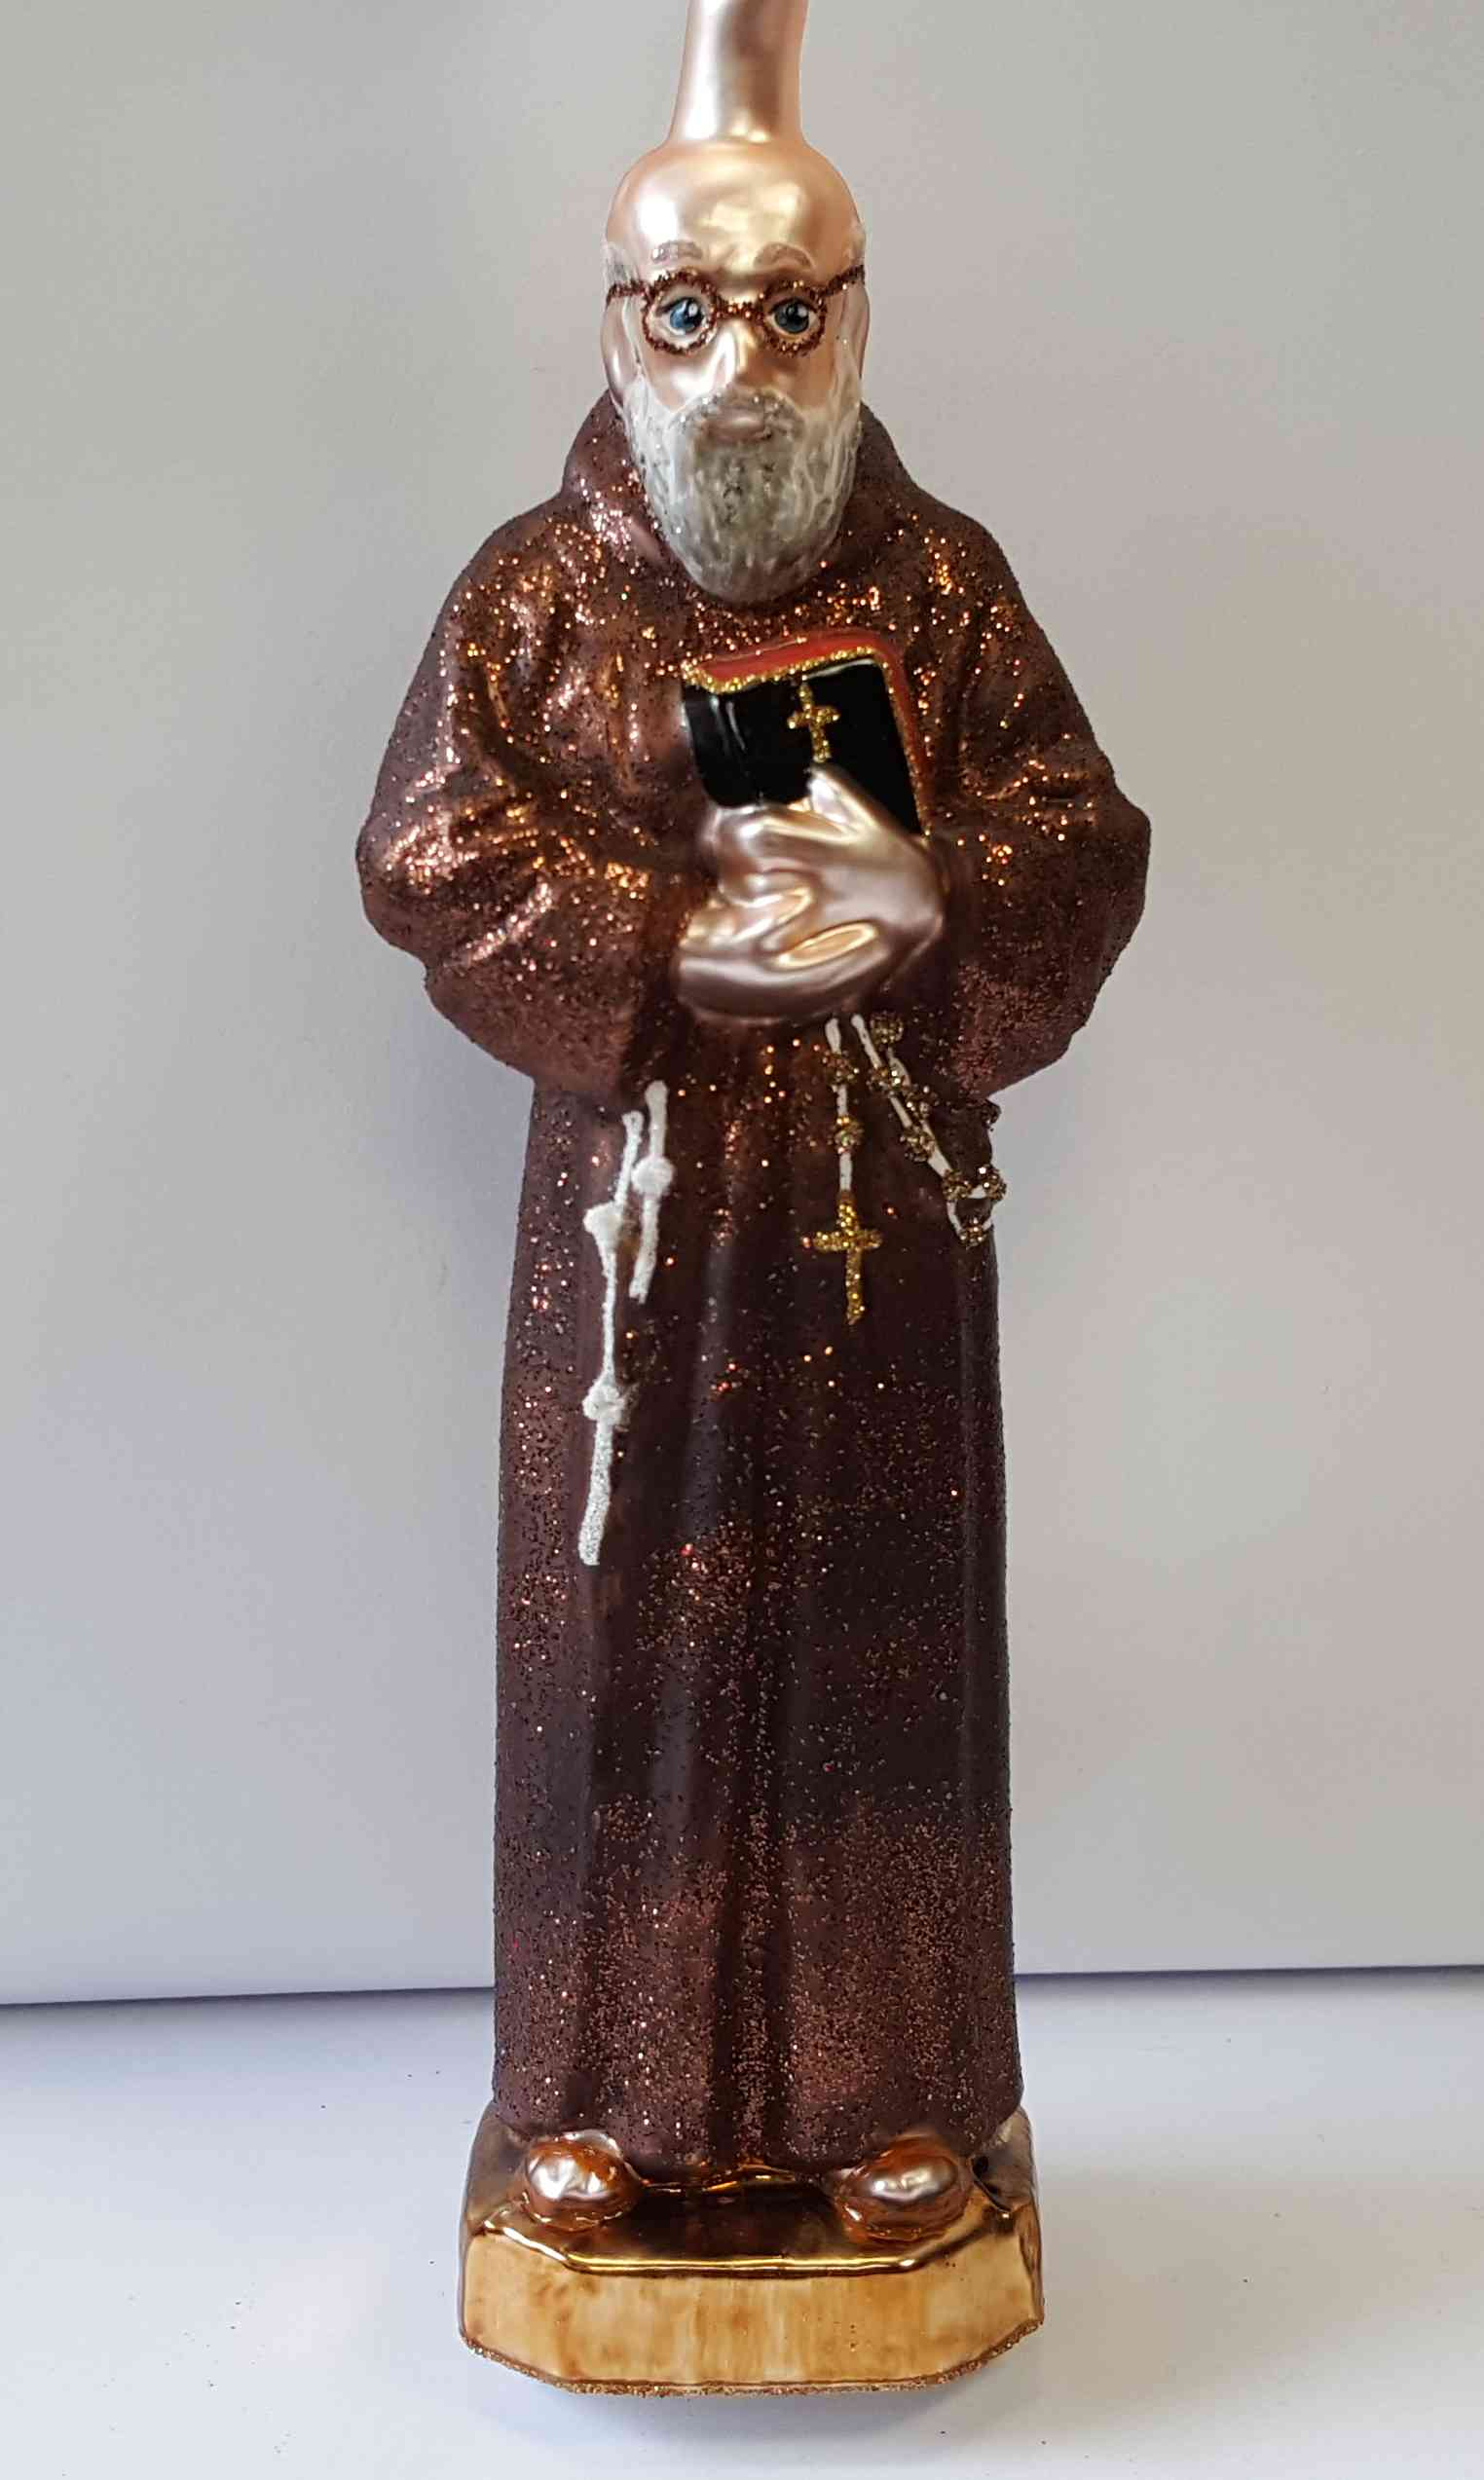 Blessed Solanus Ornament Stand sold separately # 22039 $8.00